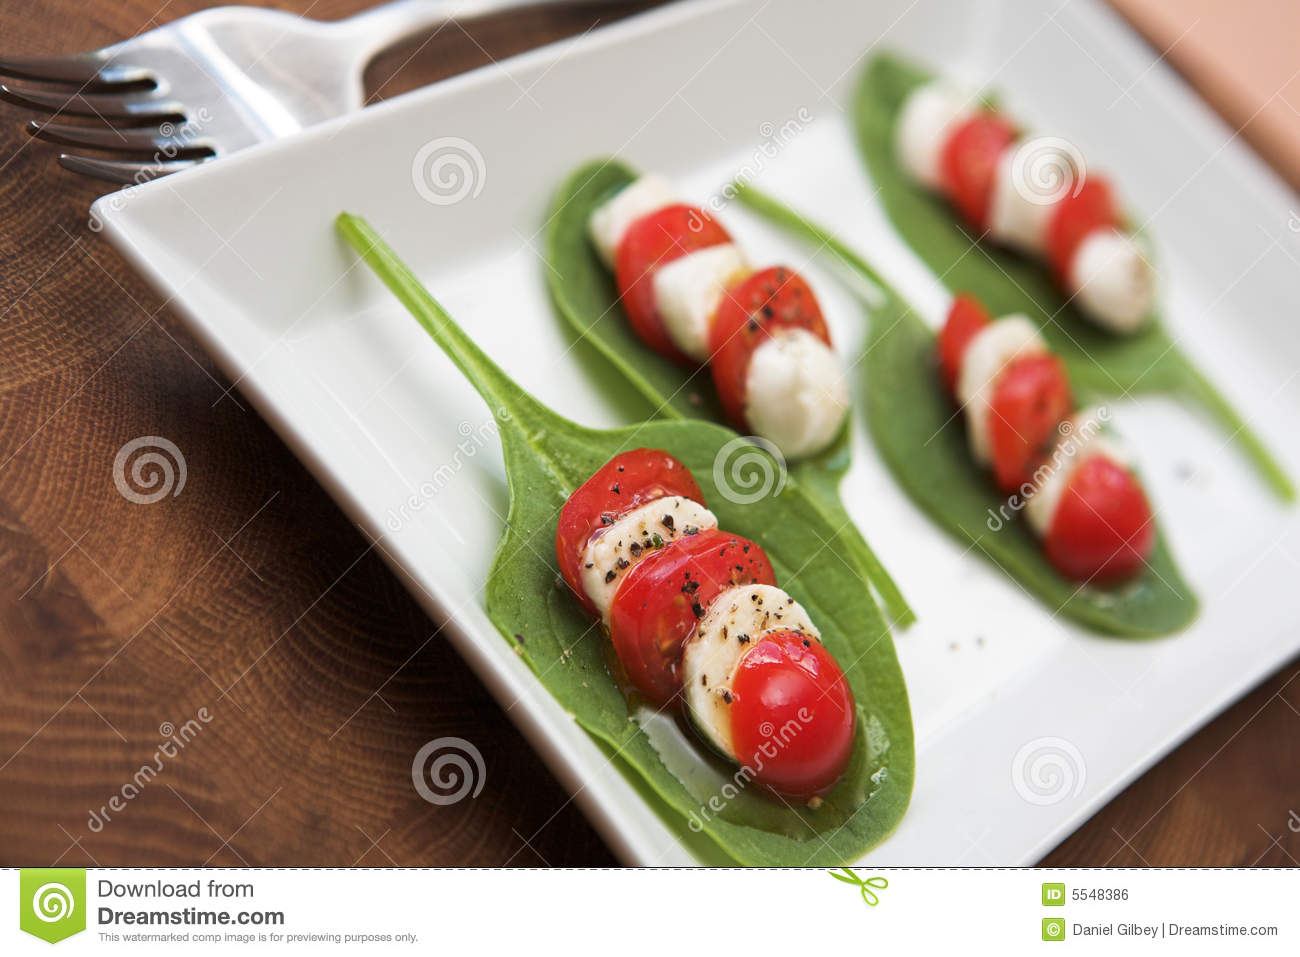 Tomato, Mozzarella & Spinach Salad Royalty Free Stock Image - Image ...